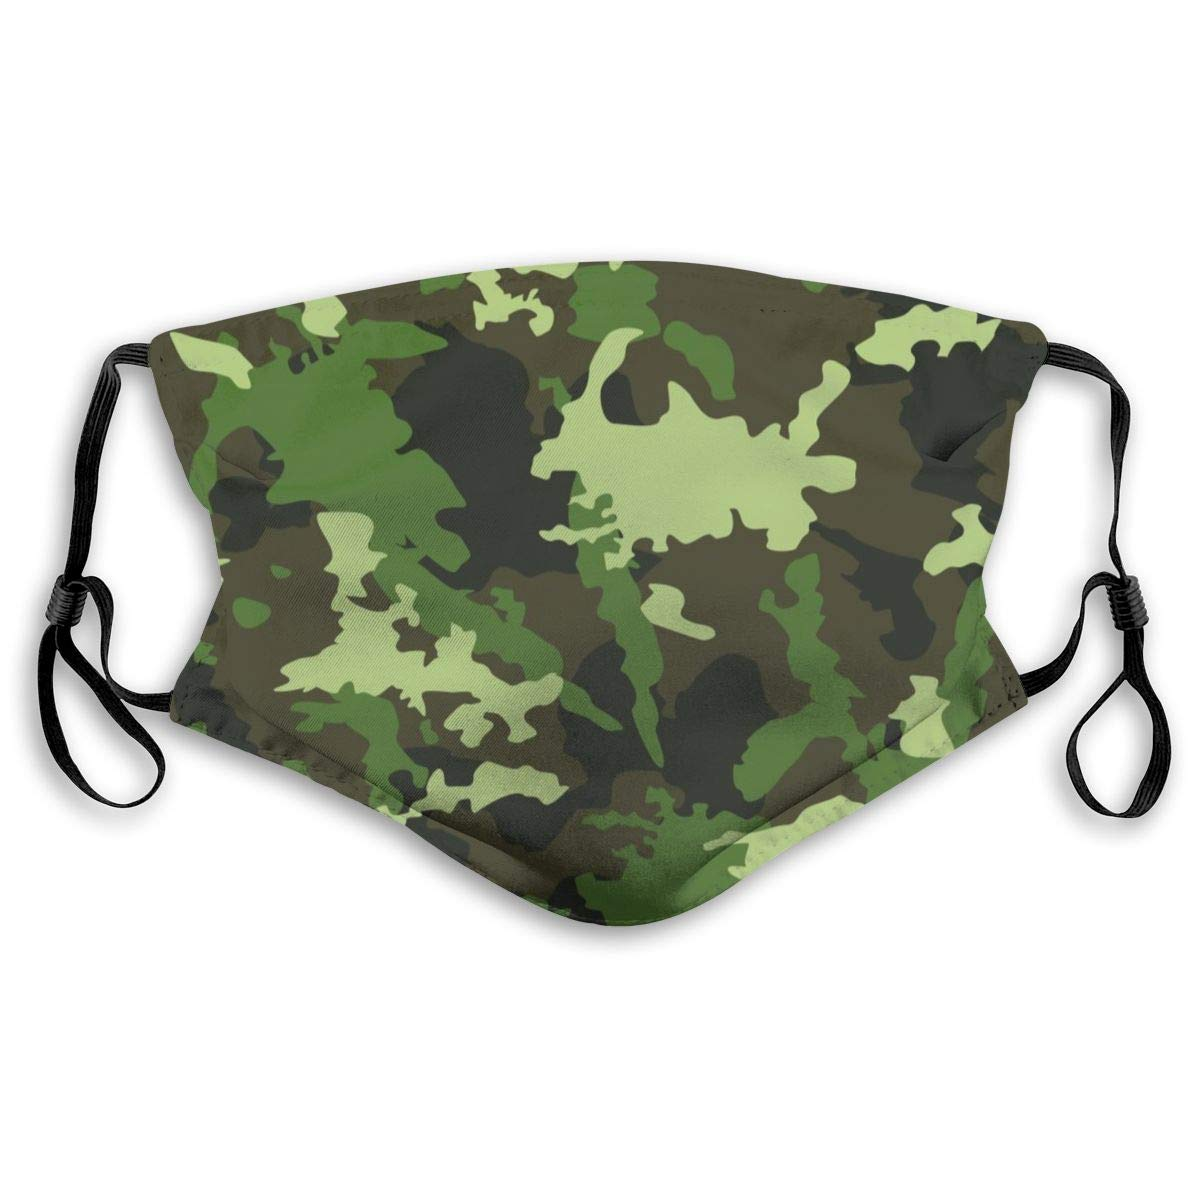 Camo Camouflage Washable Reusable Mask, Anti Dust Half Face Mouth Mask For Kids Teens Men Women With Adjustable Ear Loops